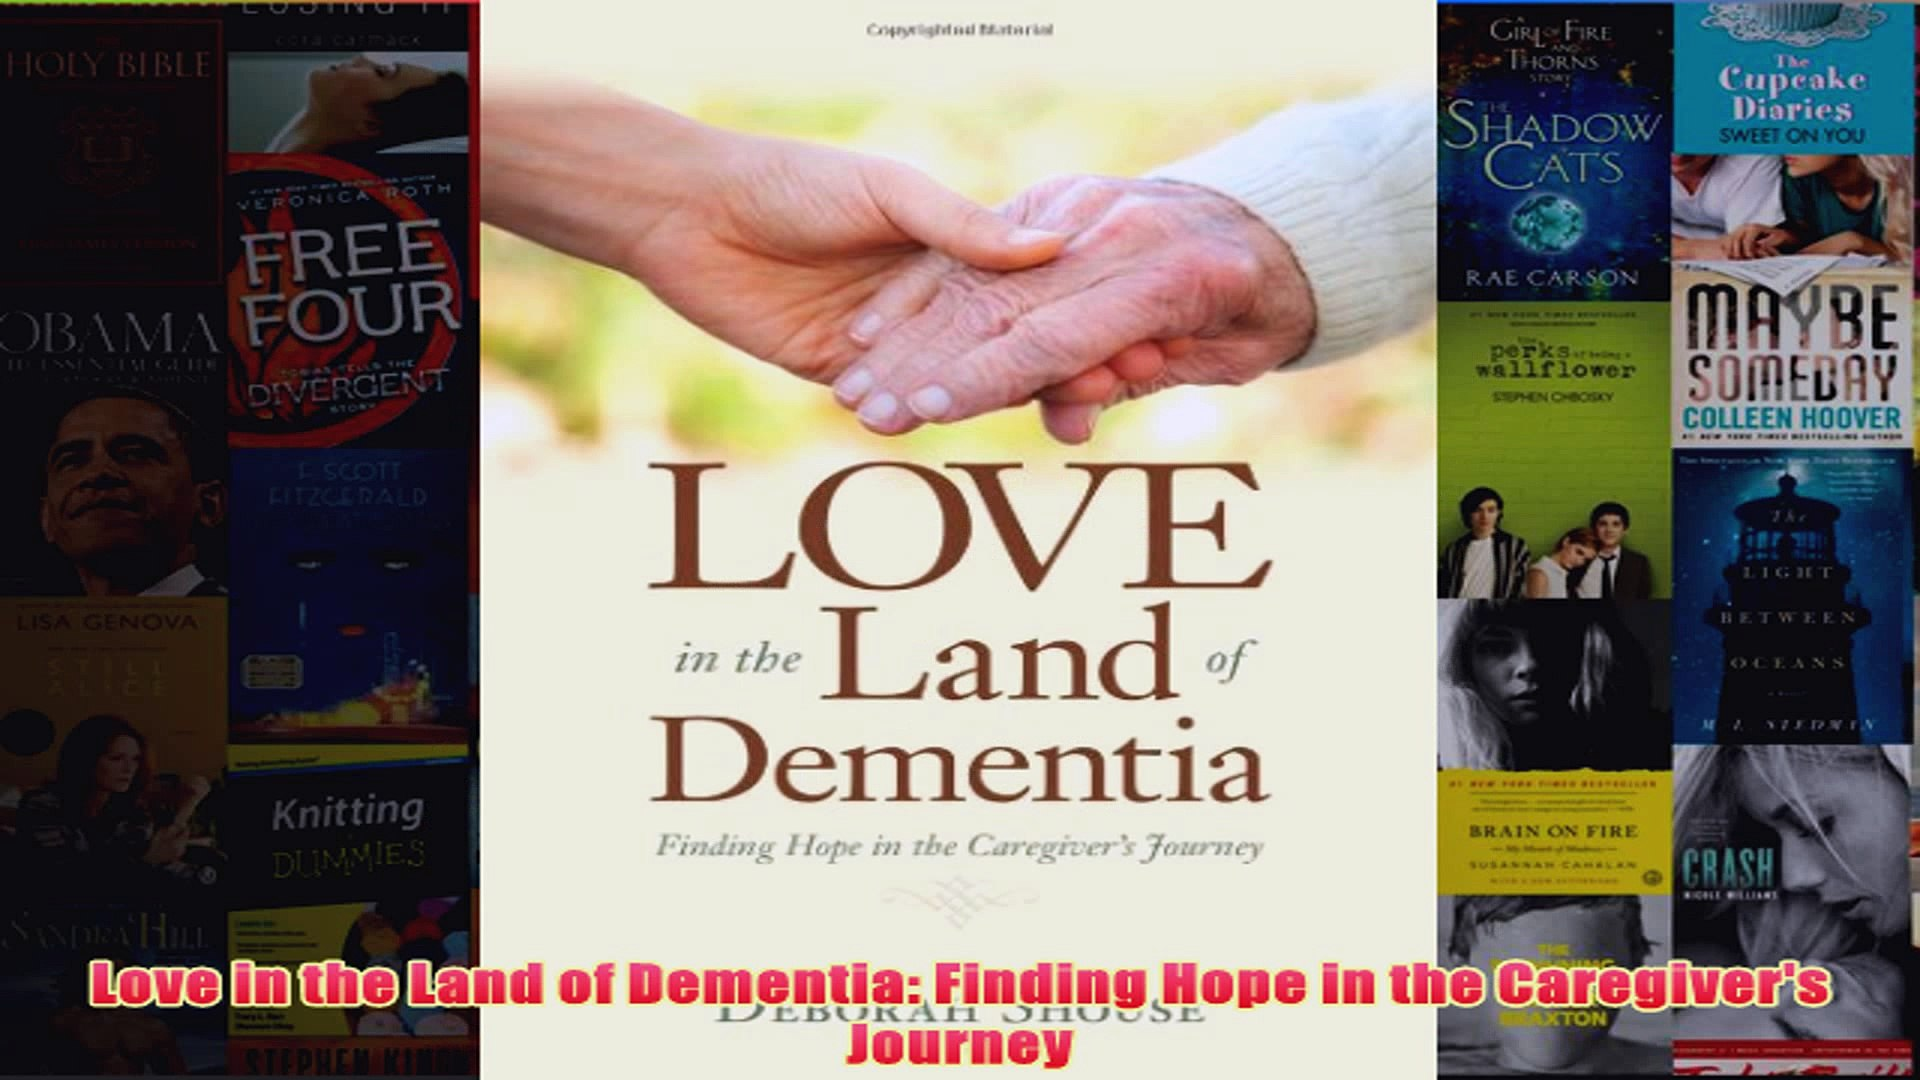 Love in the Land of Dementia: Finding Hope in the Caregivers Journey